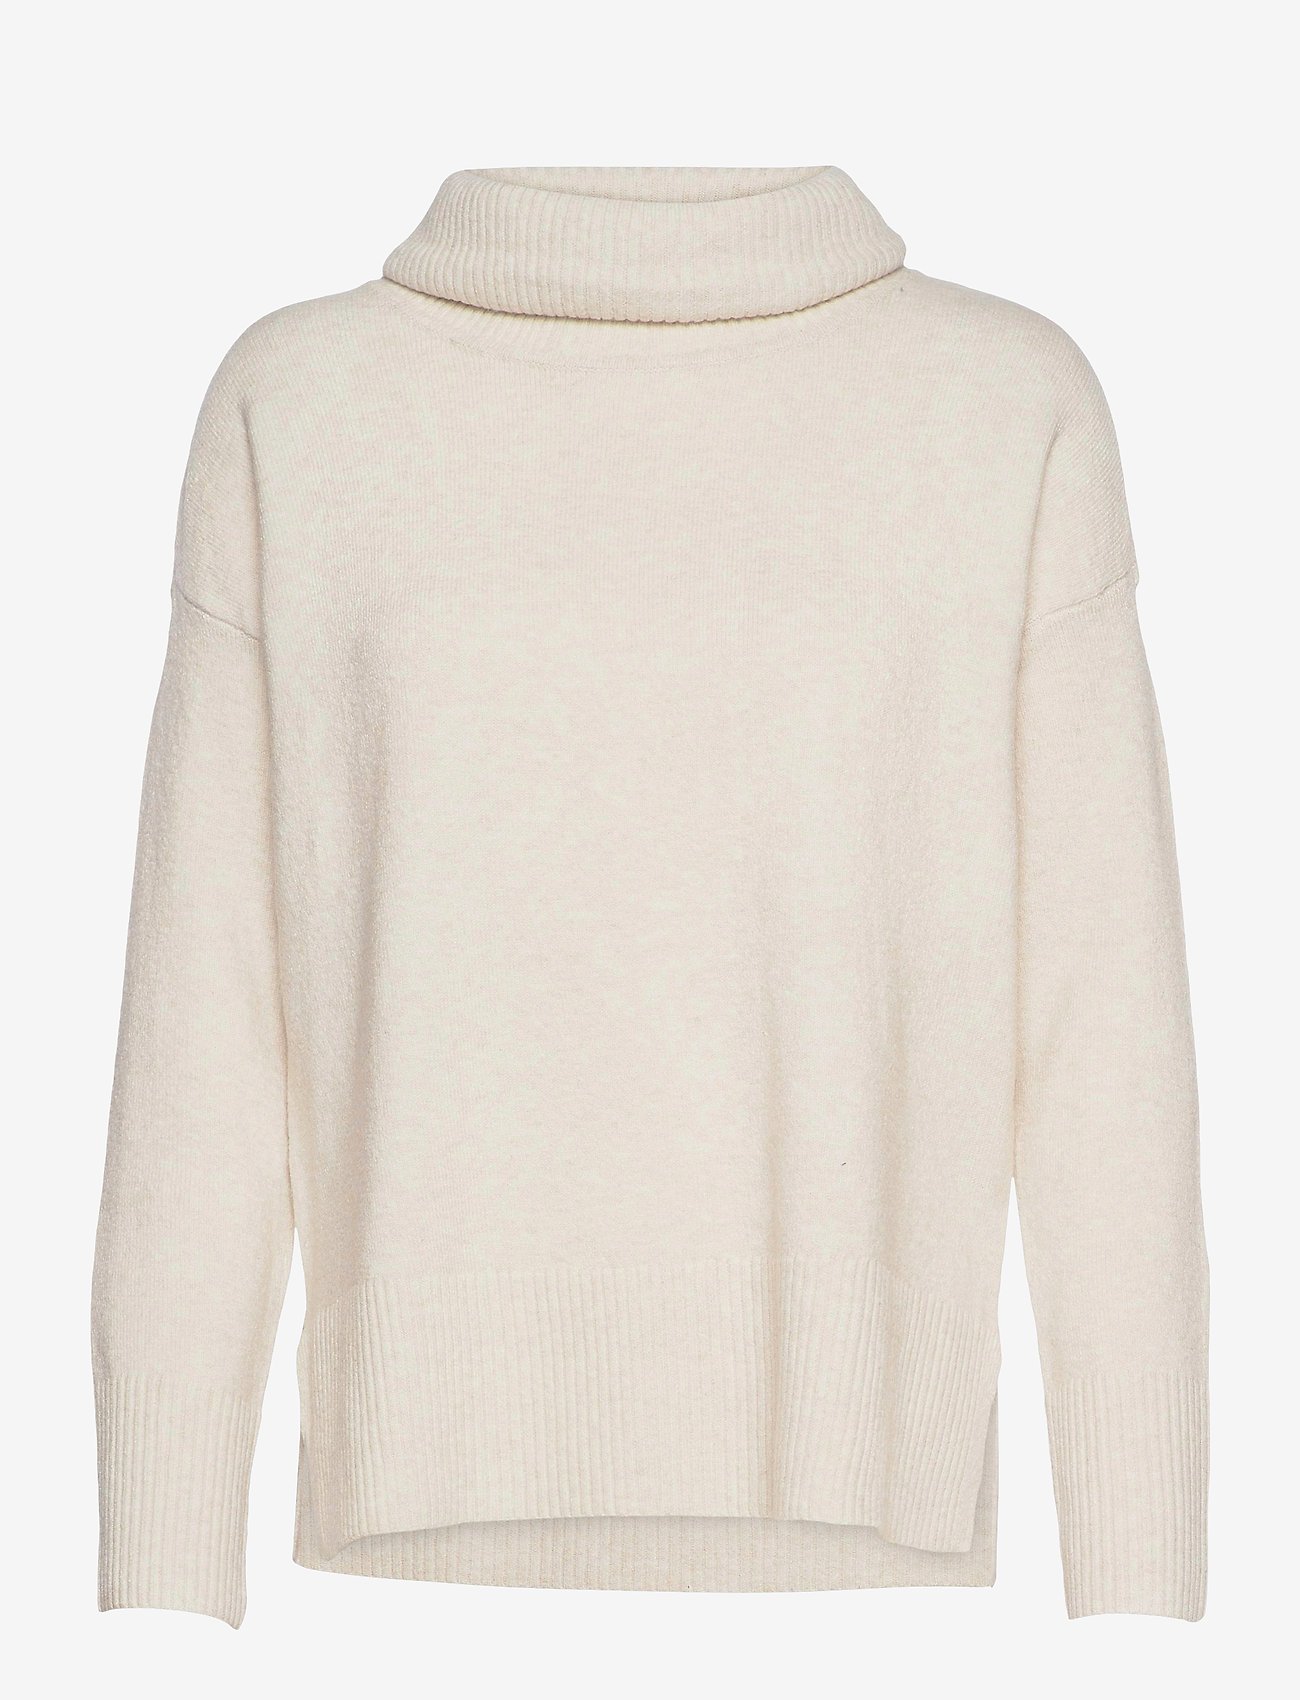 Vero Moda - VMDOFFY LS COWLNECK BLOUSE GA COLOR - tröjor - birch - 0